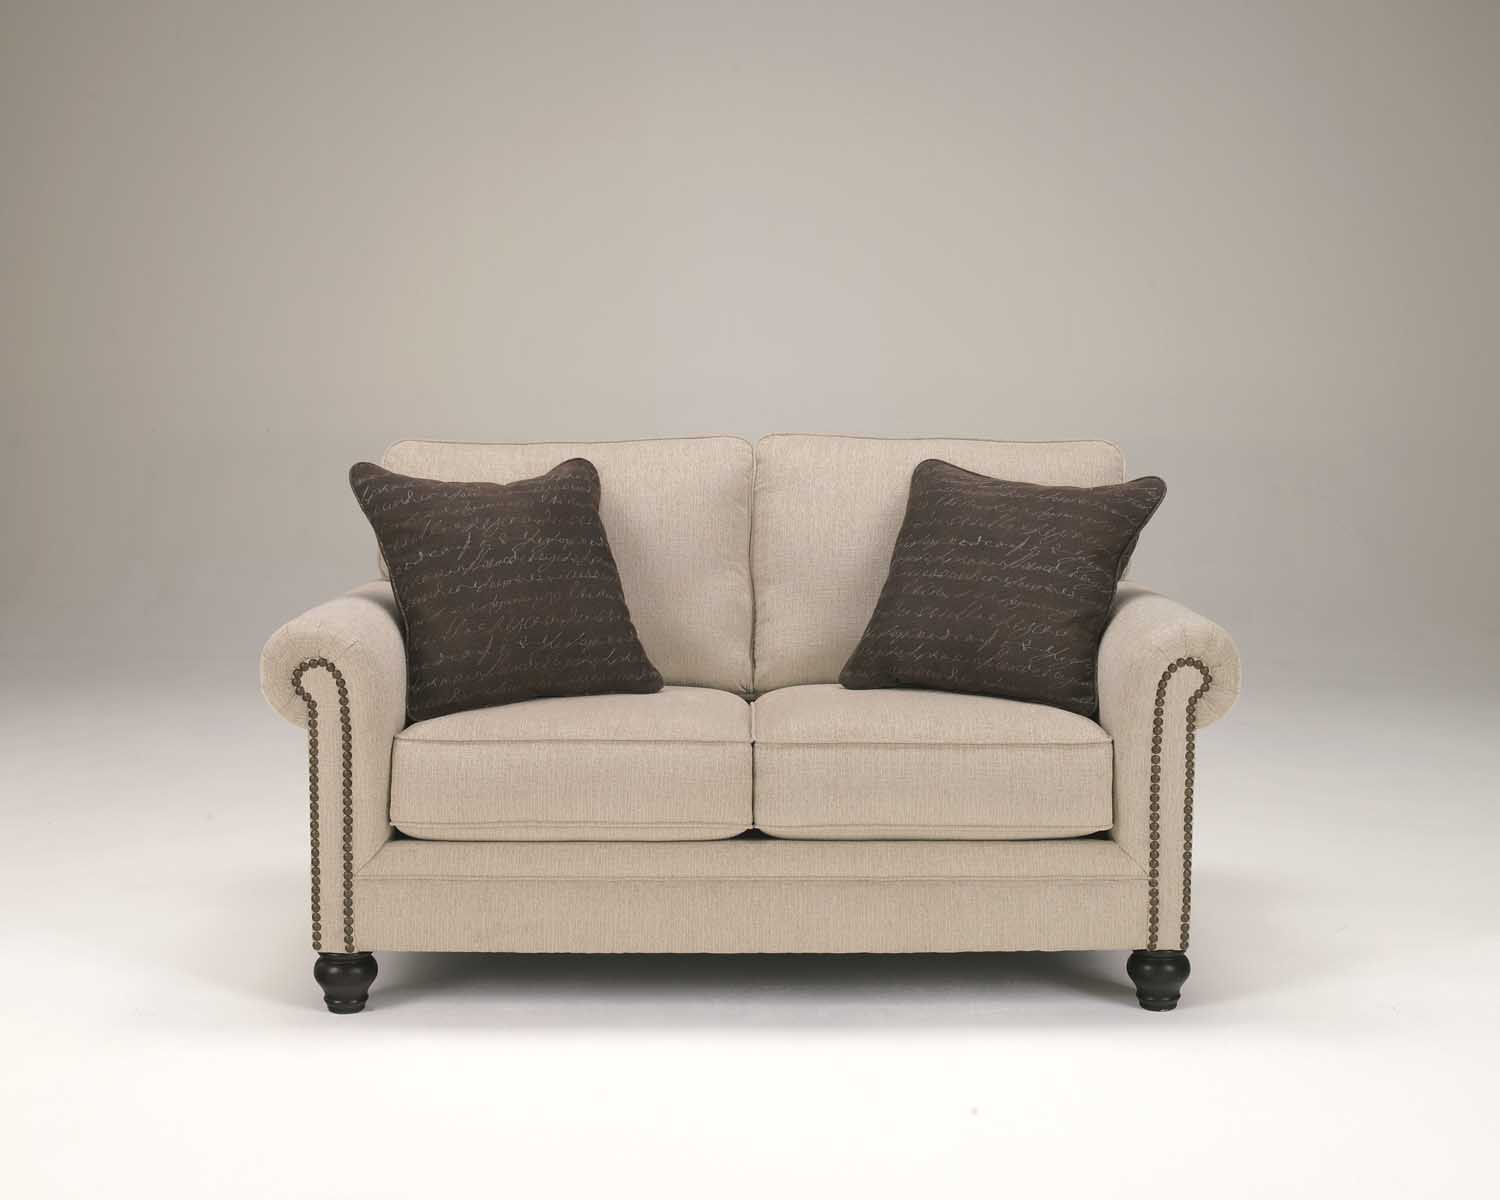 1300035 in by Ashley Furniture in Greensboro NC Loveseat